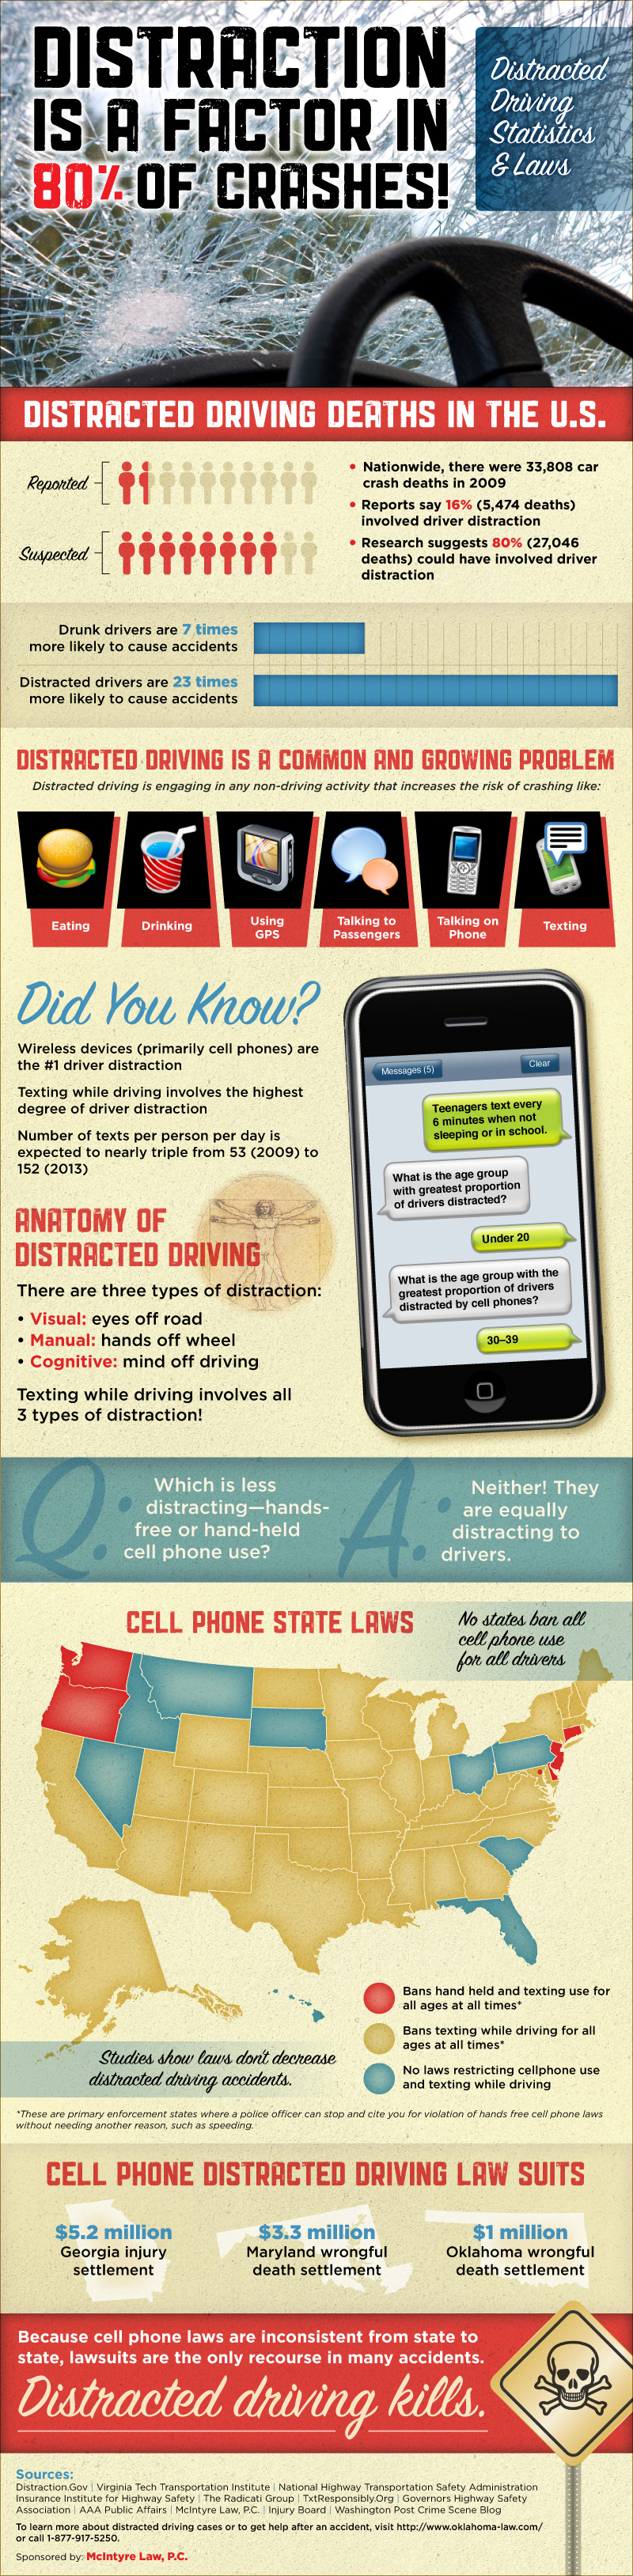 Return to Distracted Driving Statistics & Laws